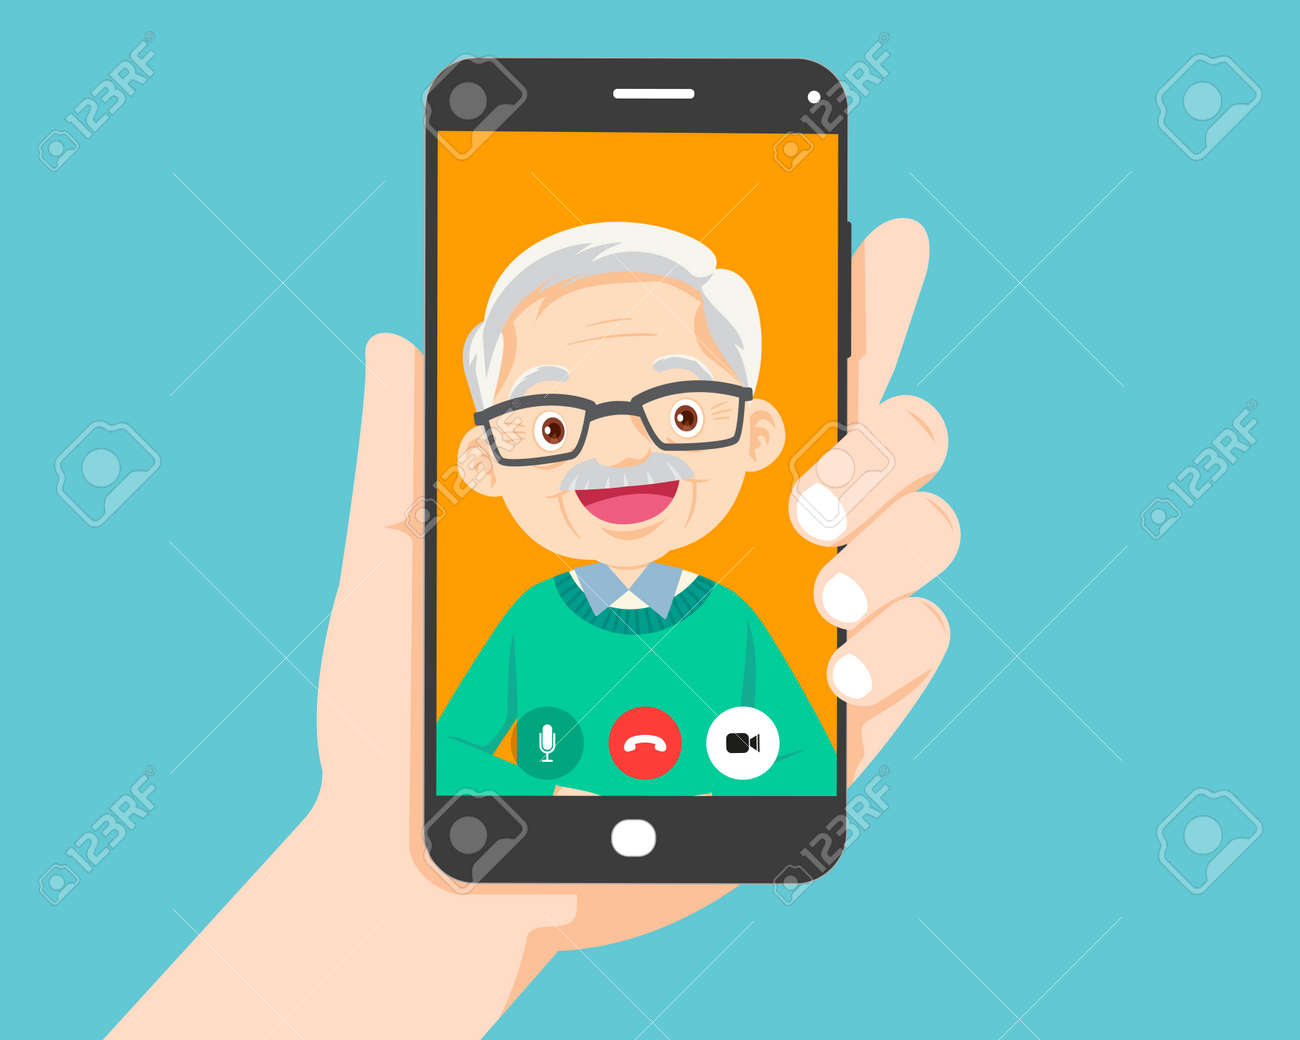 Hand holding smartphone with elderly on screen.Video call with grandparents or aging parents. - 169091867